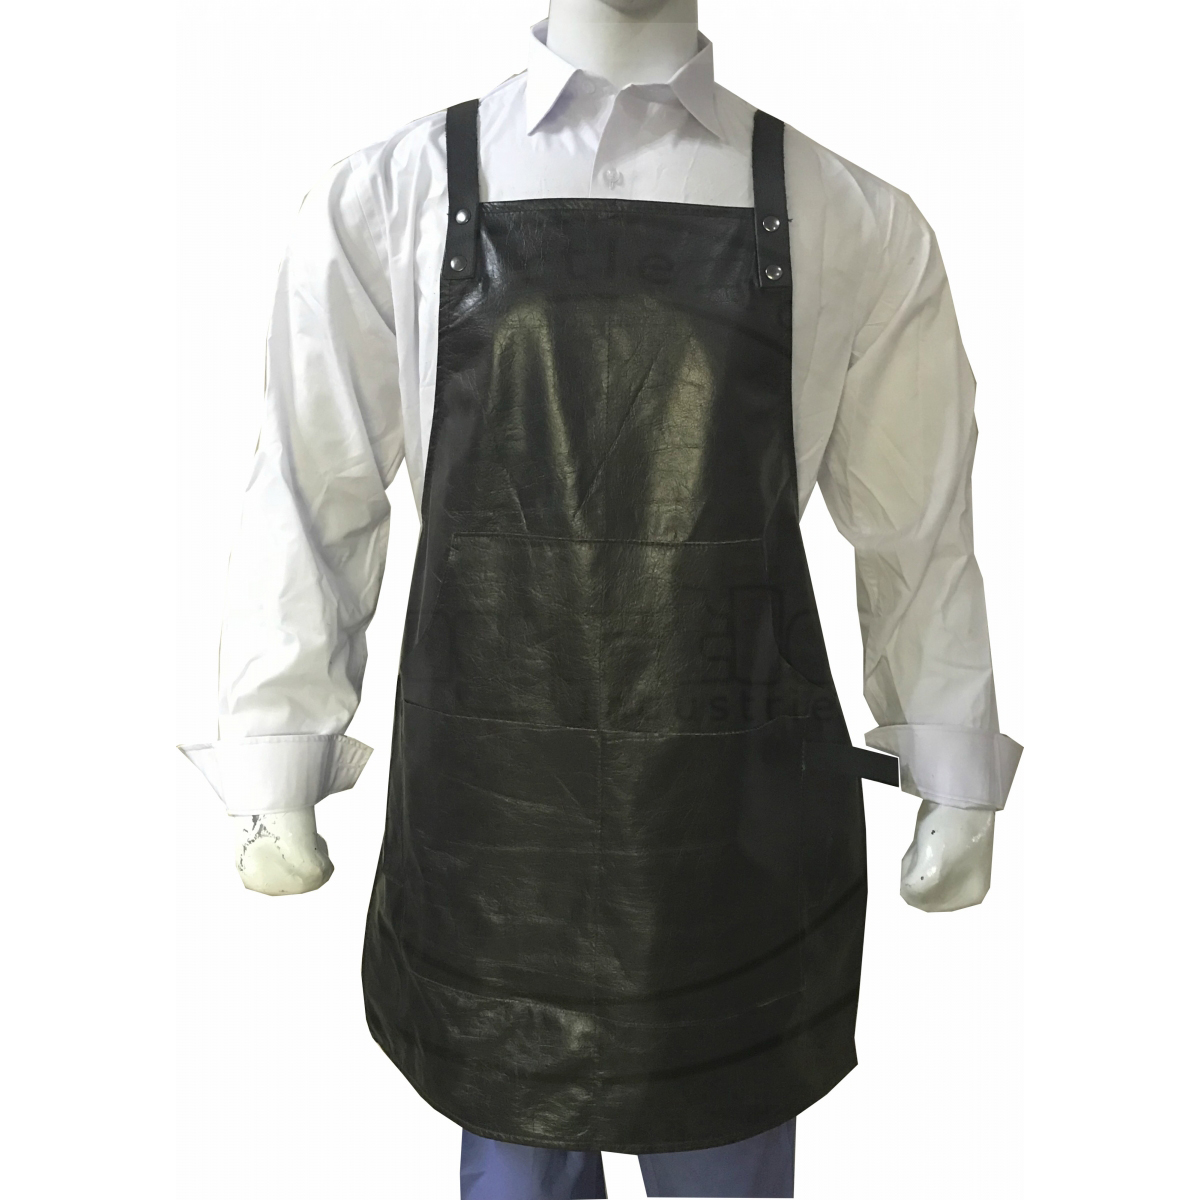 WORKING LEATHER APRON